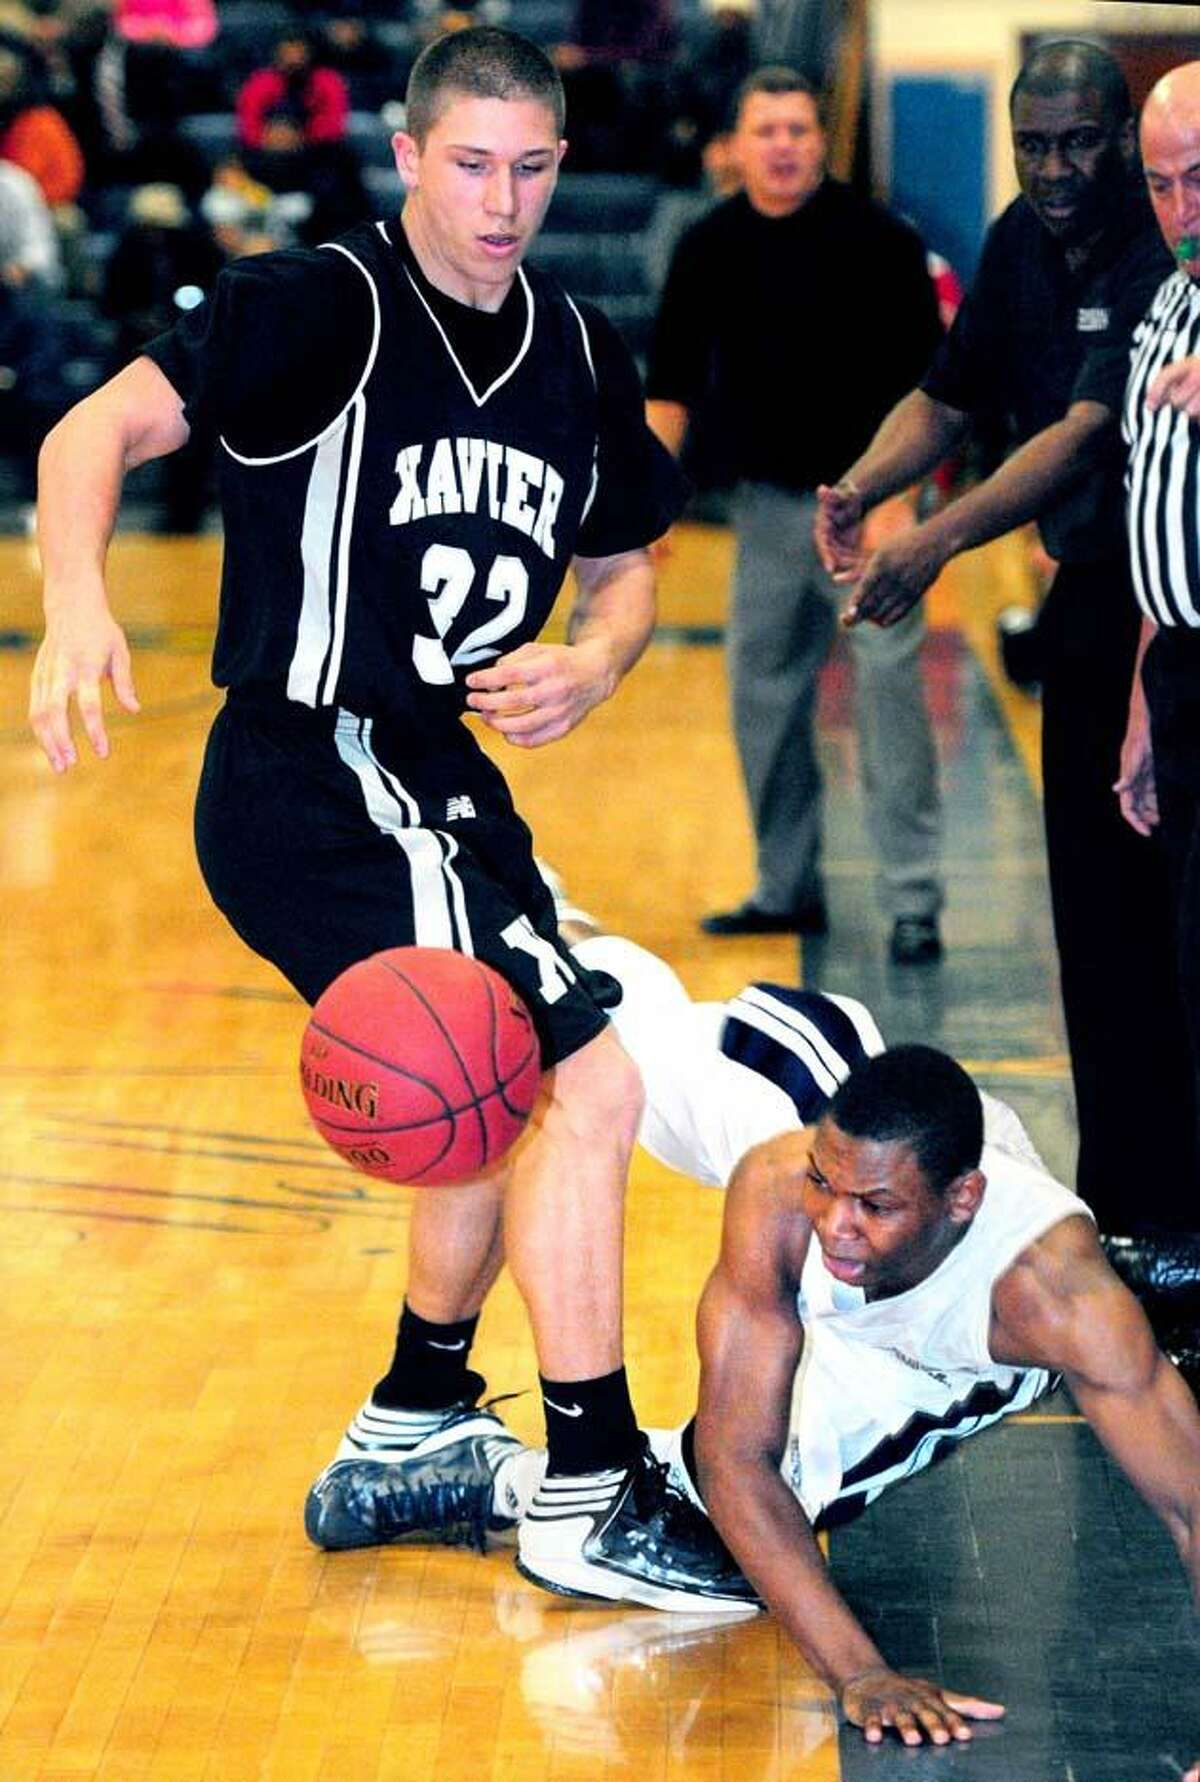 Joe Carbone (left) of Xavier guards Bobby Bynum (right) of HIllhouse as he goes out of bounds in the second half of the Class LL boys semifinal in East Haven on 3/12/2013. Photo by Arnold Gold/New Haven Register